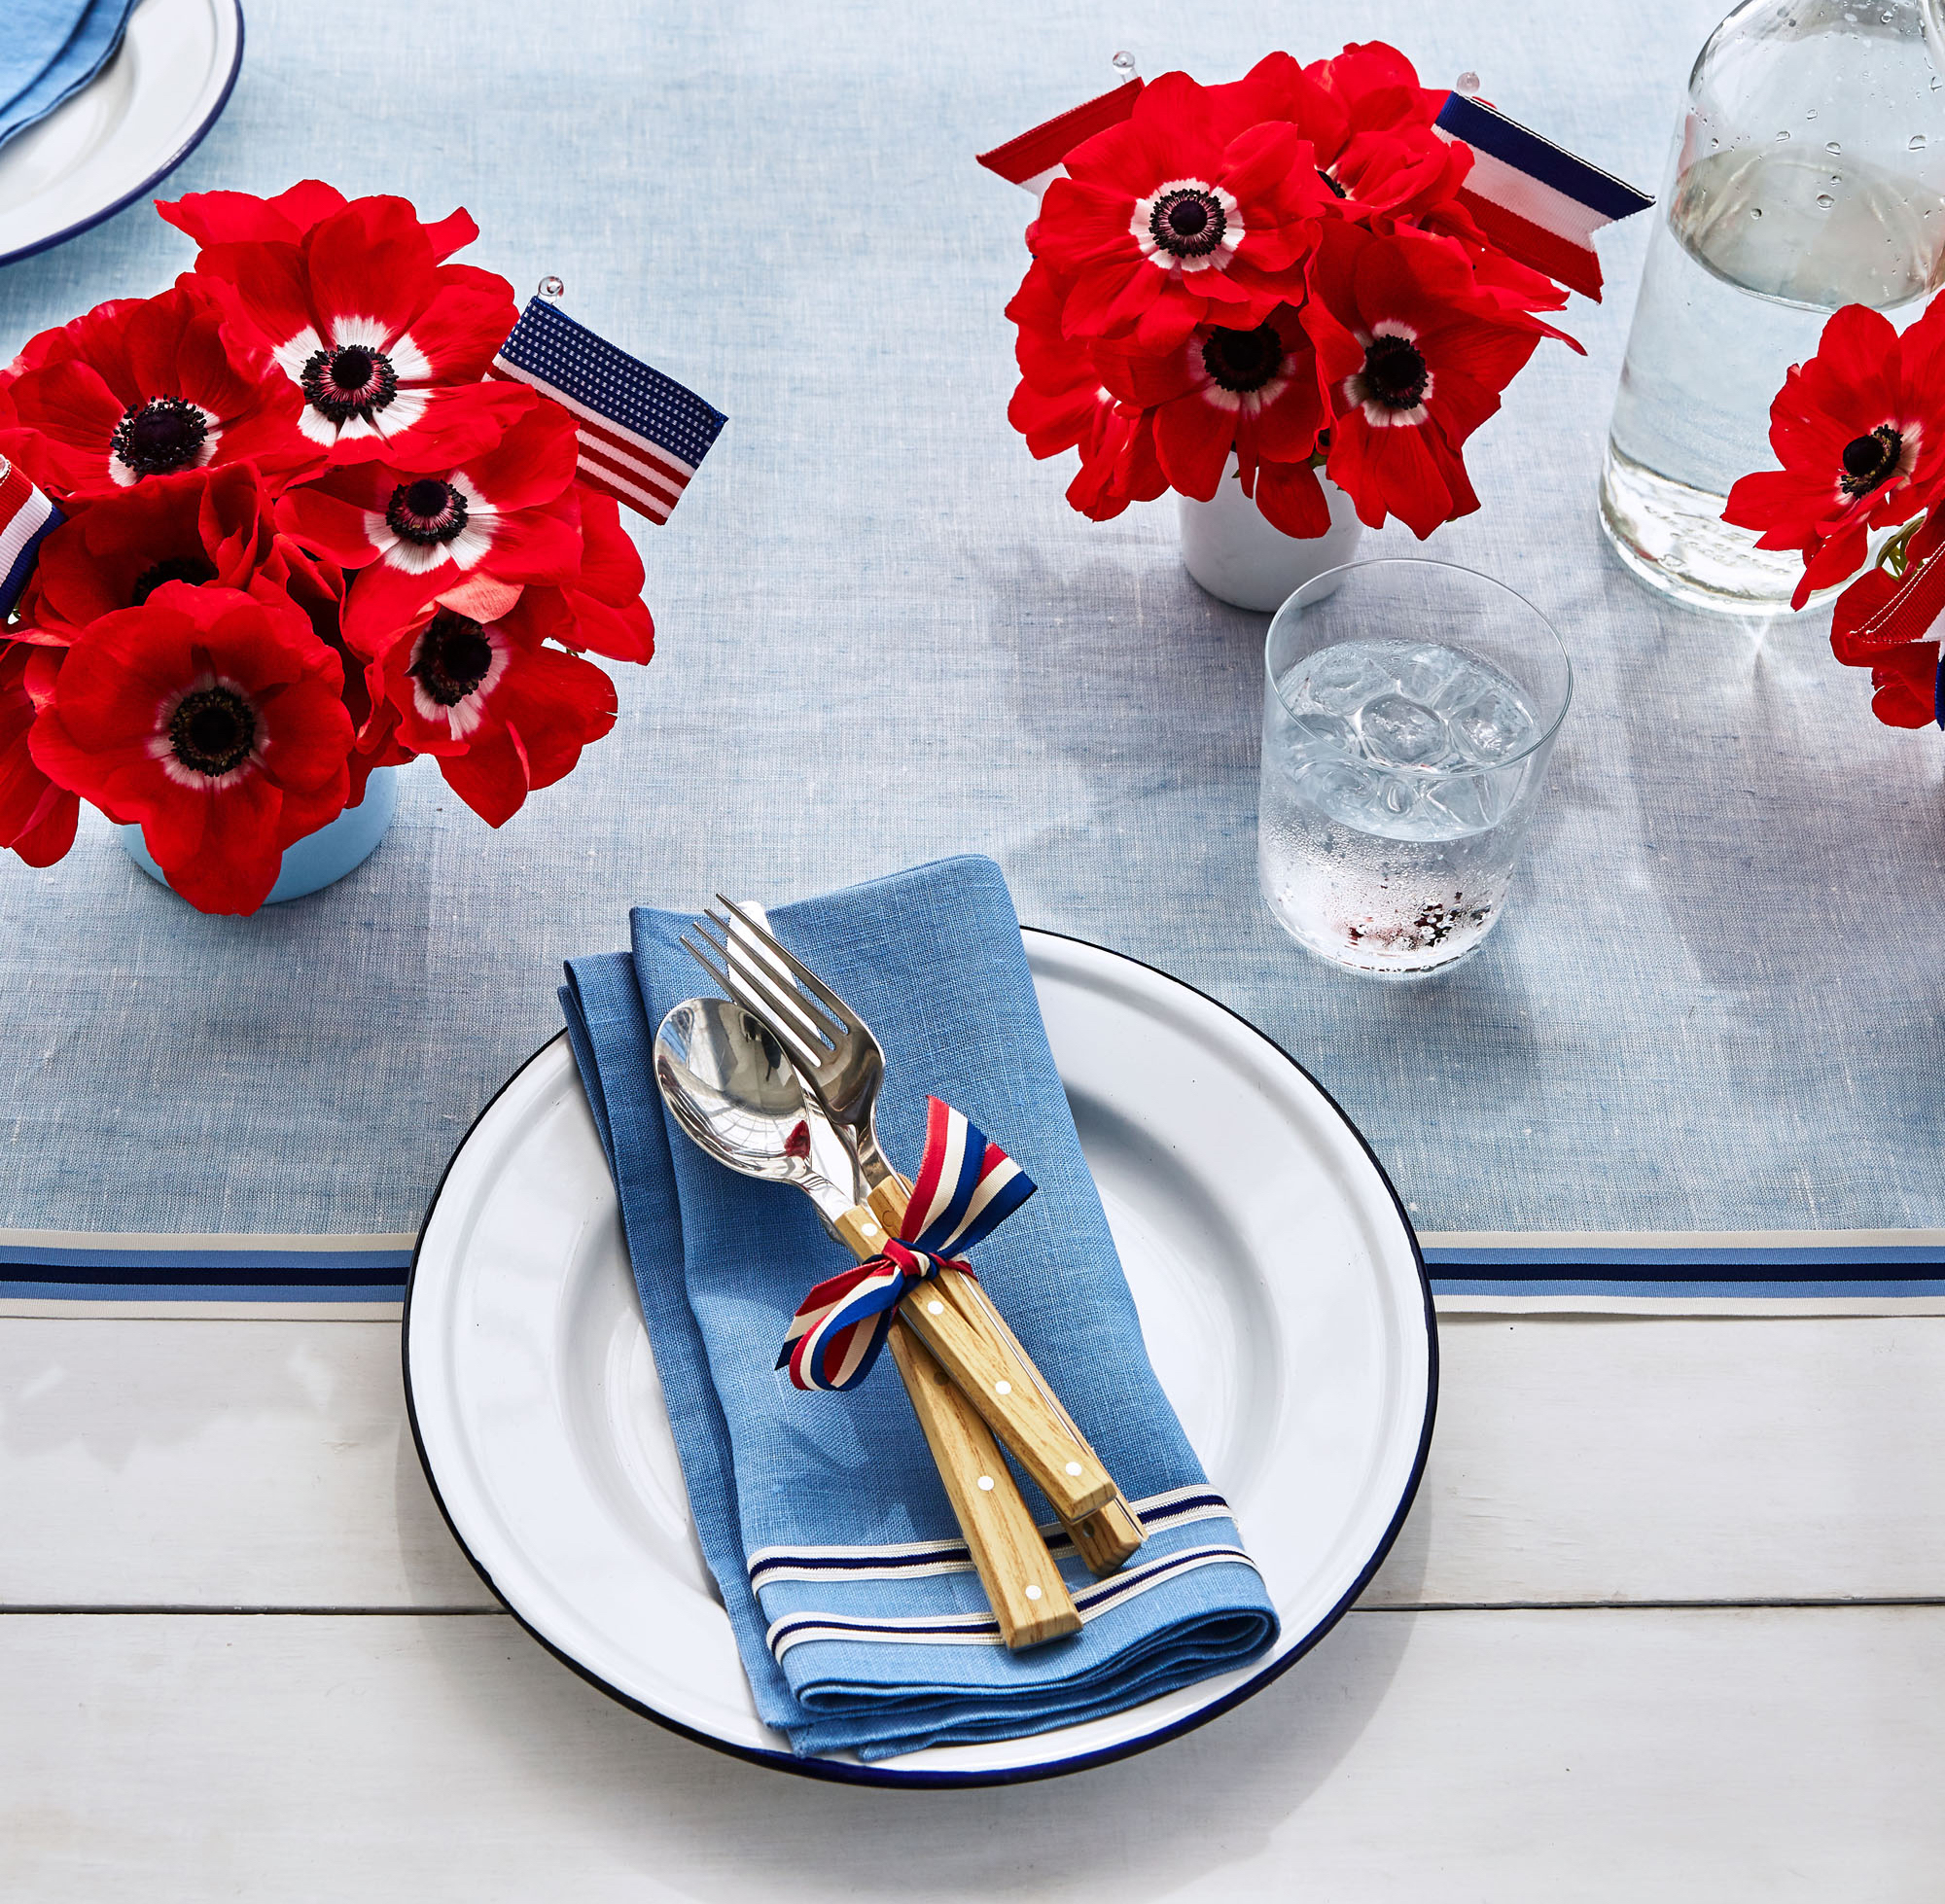 Patriotic Table Setting with Anemone Flower Arrangements